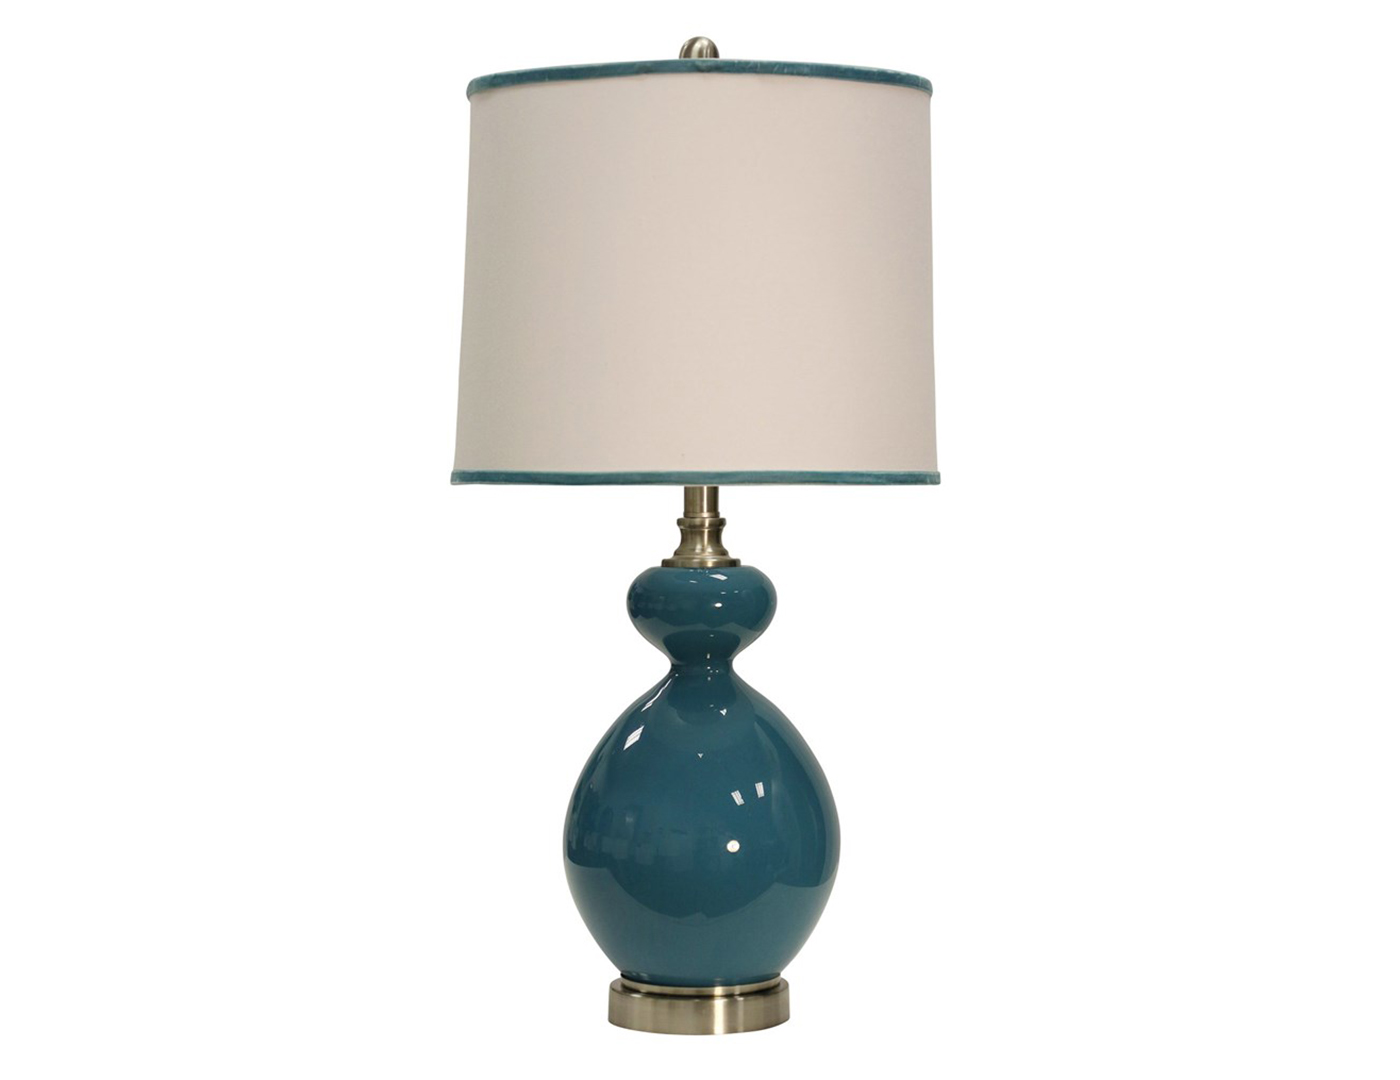 turquoise glass table lamp. Black Bedroom Furniture Sets. Home Design Ideas